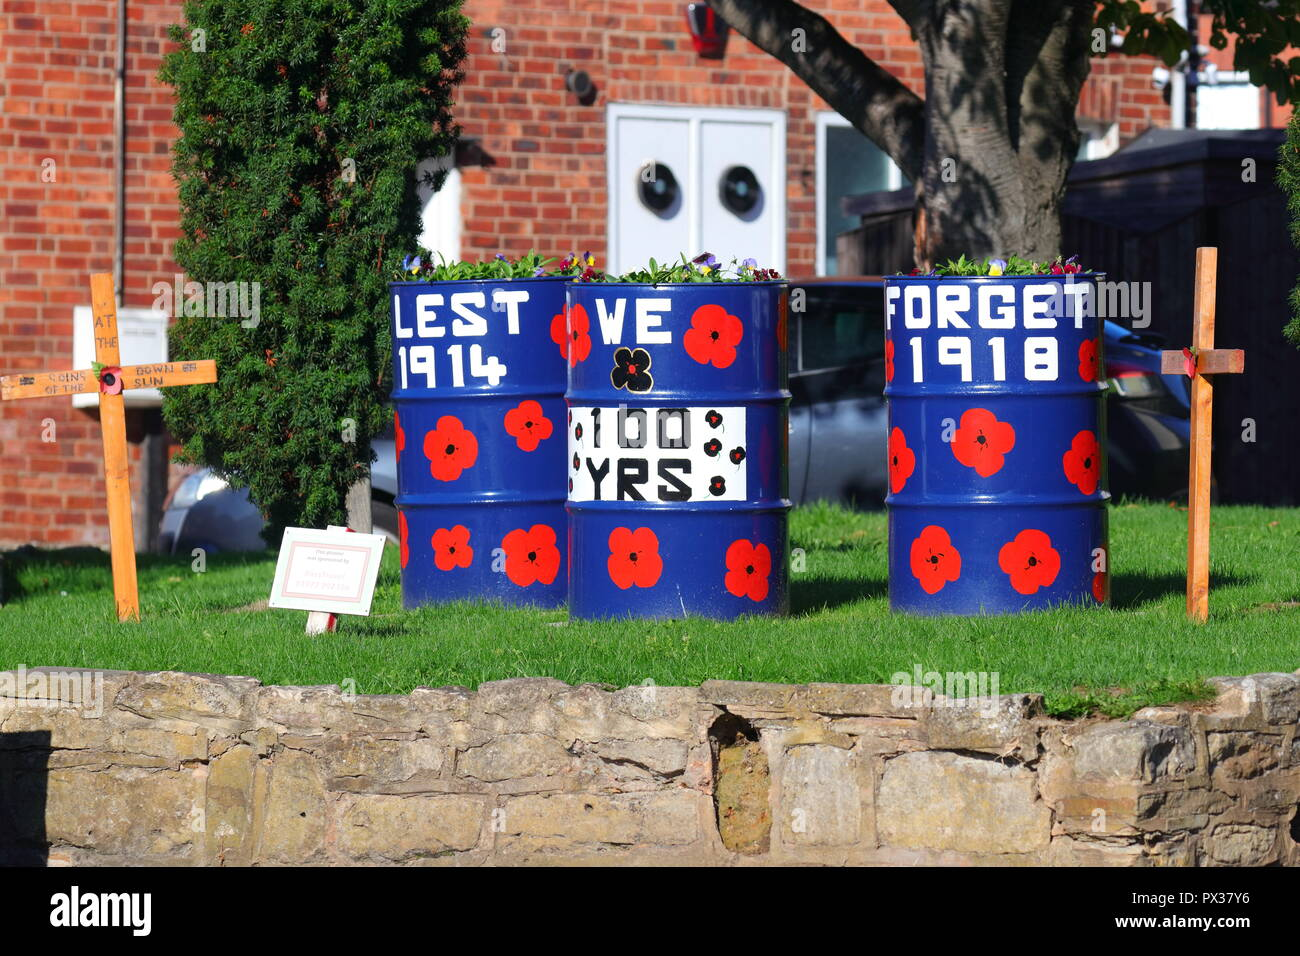 A poppy display in Allerton Bywater, ready for the celebration of 100 years of Armistice Day - Stock Image